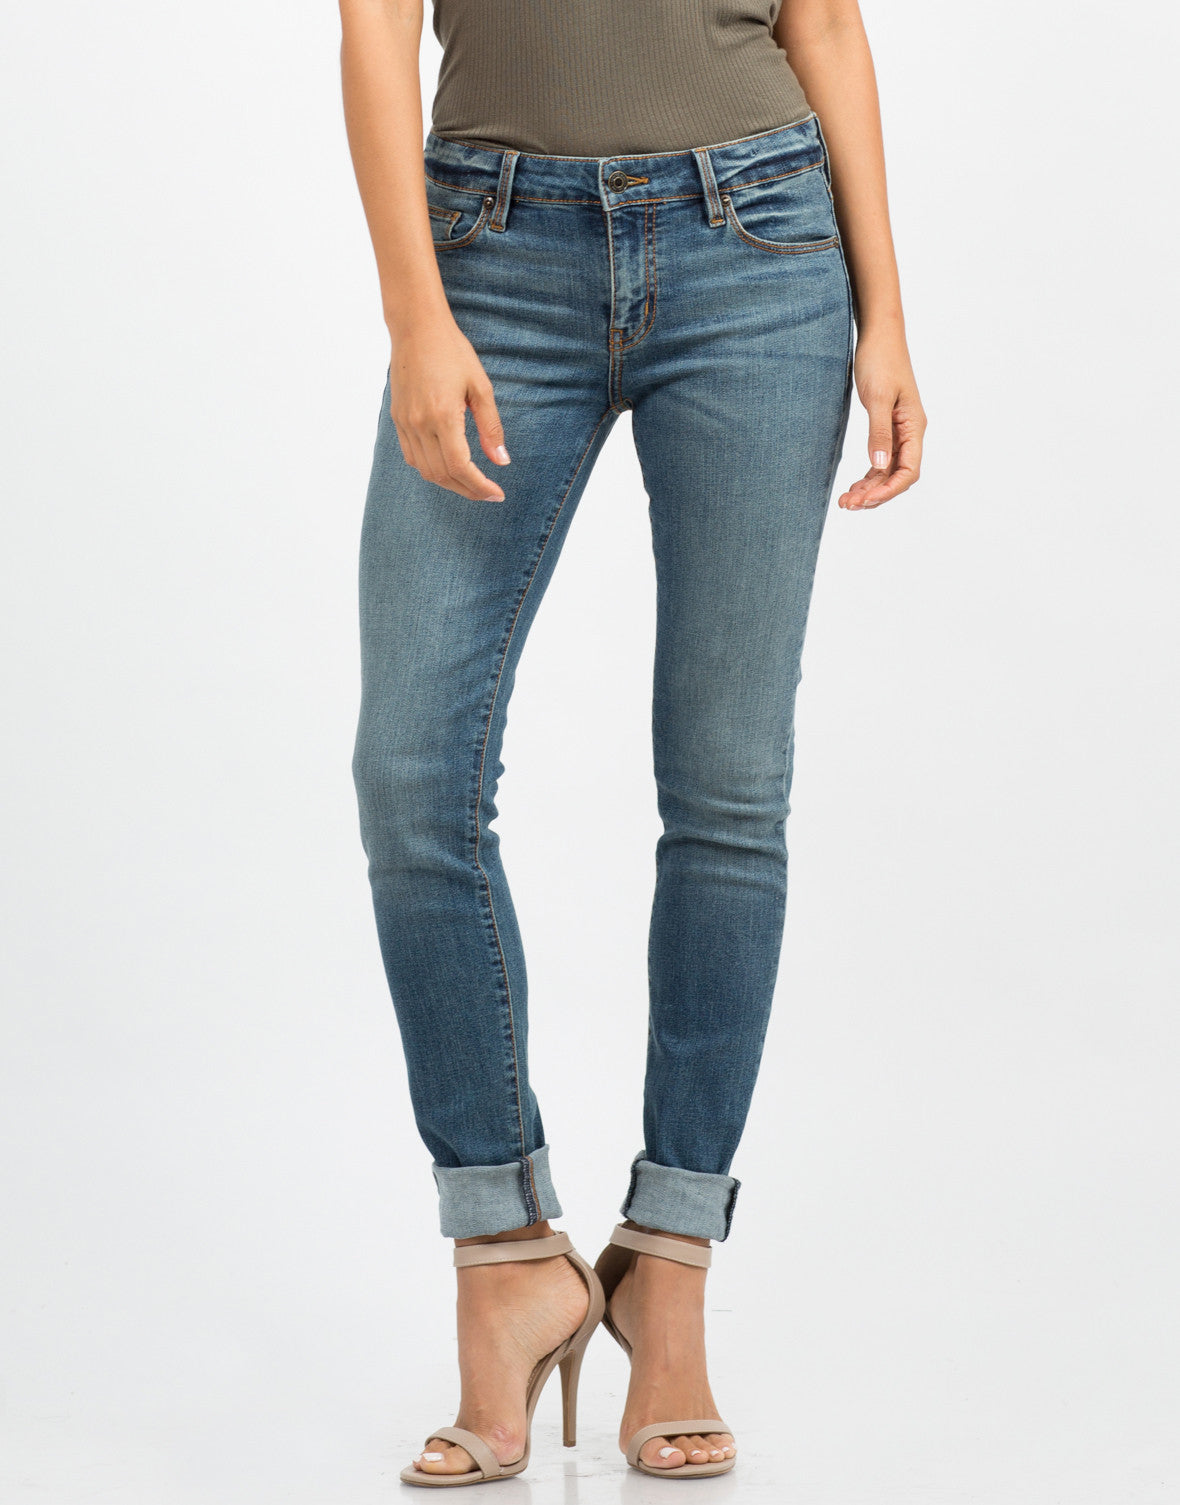 Front View of Mid Rise Skinny Jeans